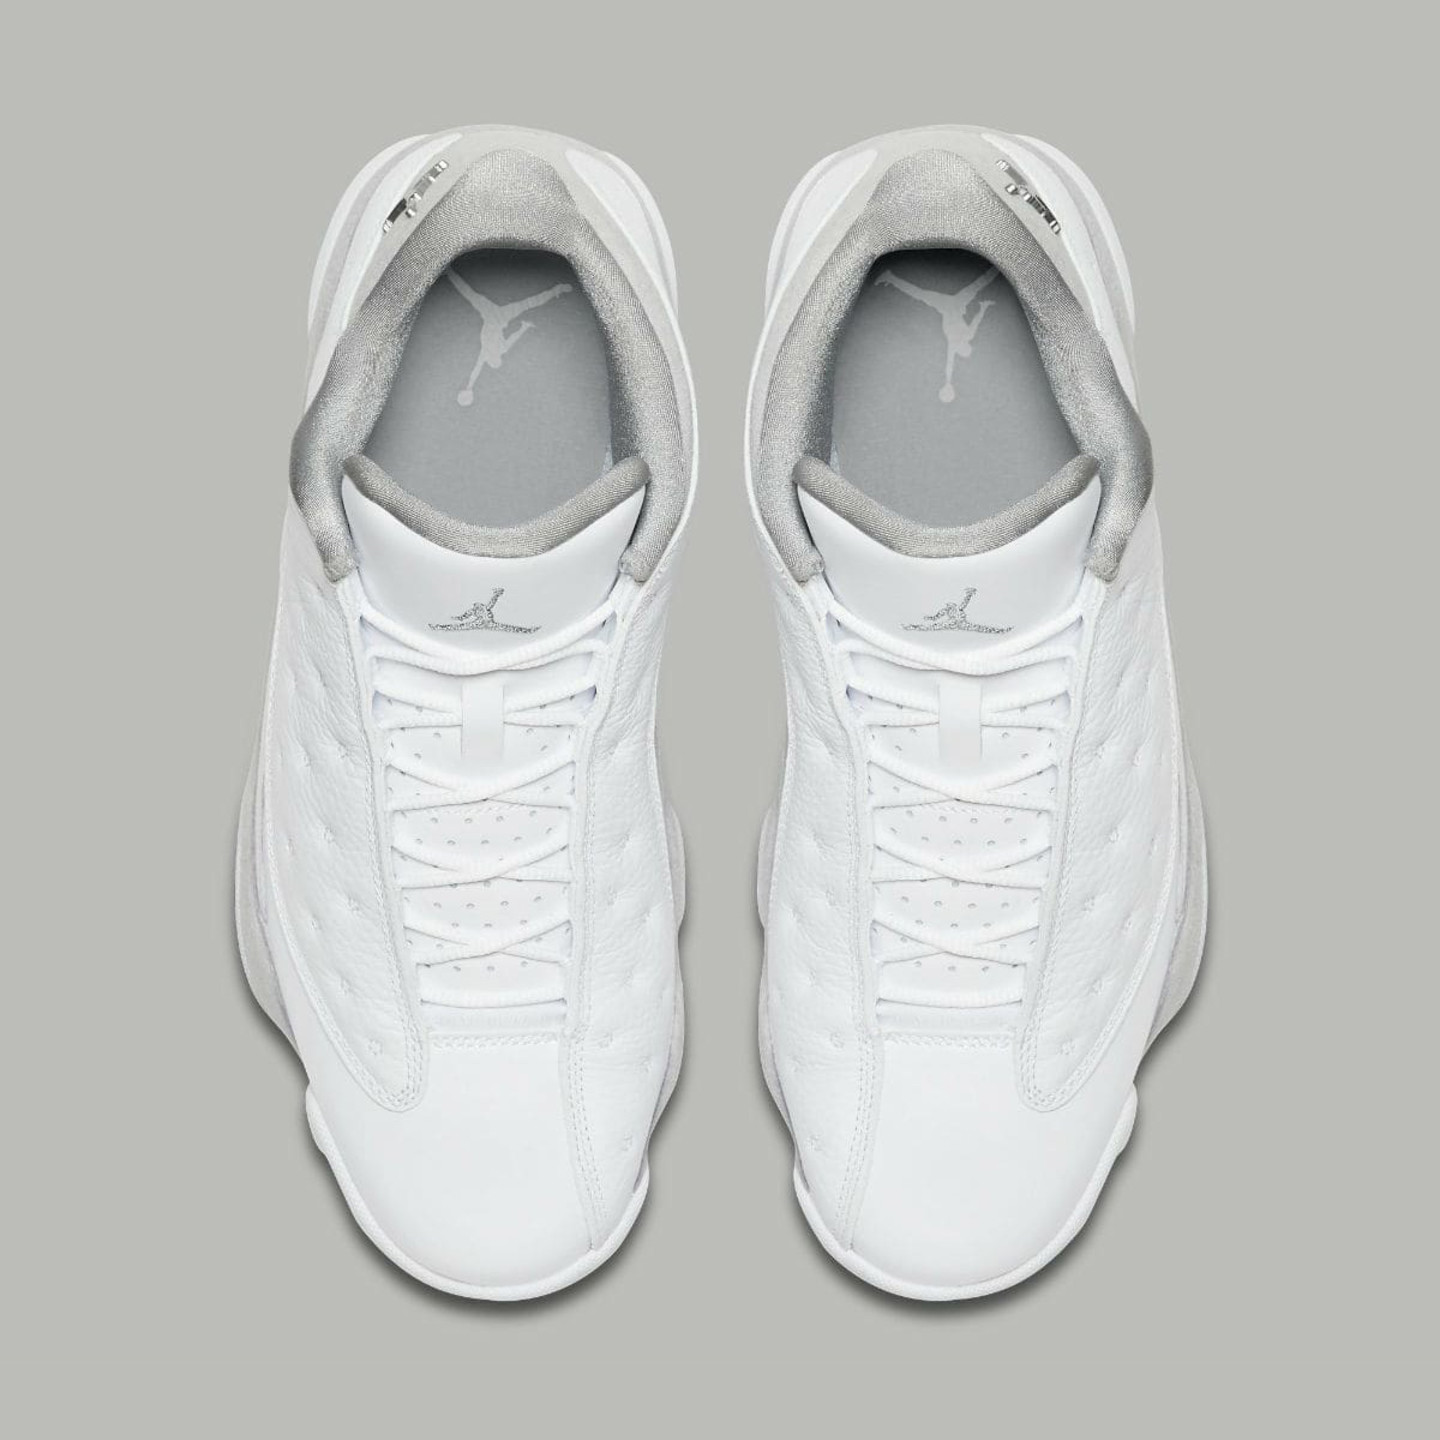 Jordan Air Jordan 13 Retro Low 'Pure Money' White / Metallic Silver 310810-100-46